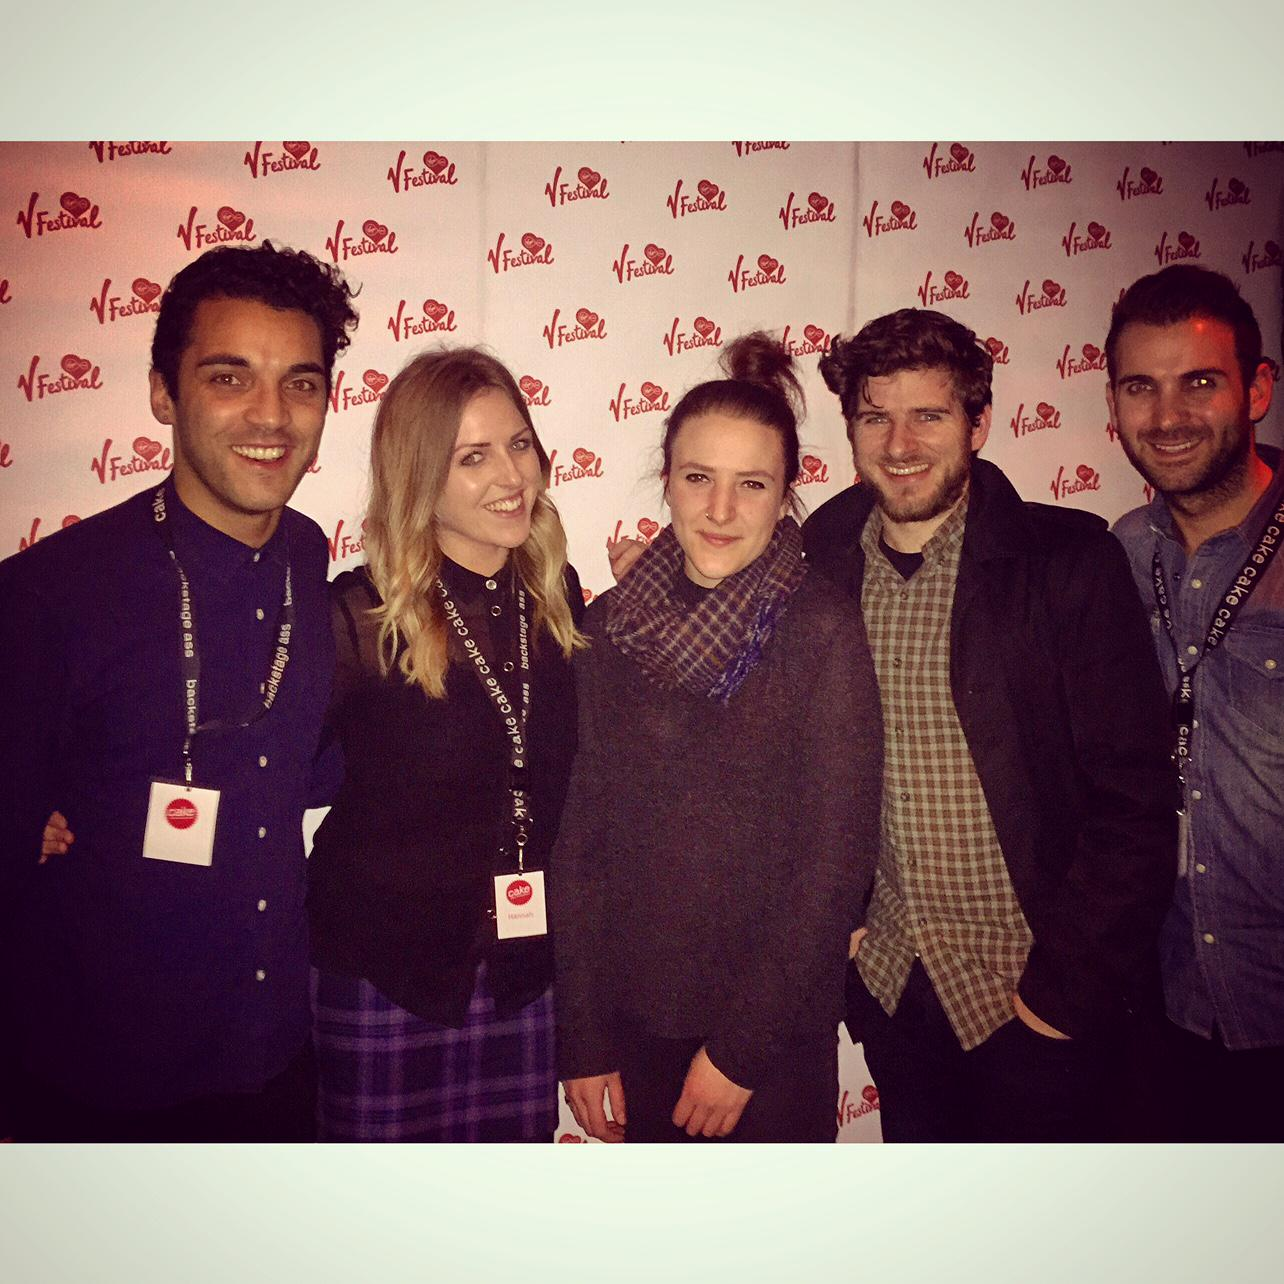 Here's a lovely picture of the Cake team officially launching the 2015 @VFestival at Mahiki last night... http://t.co/mFzbDIOsjb